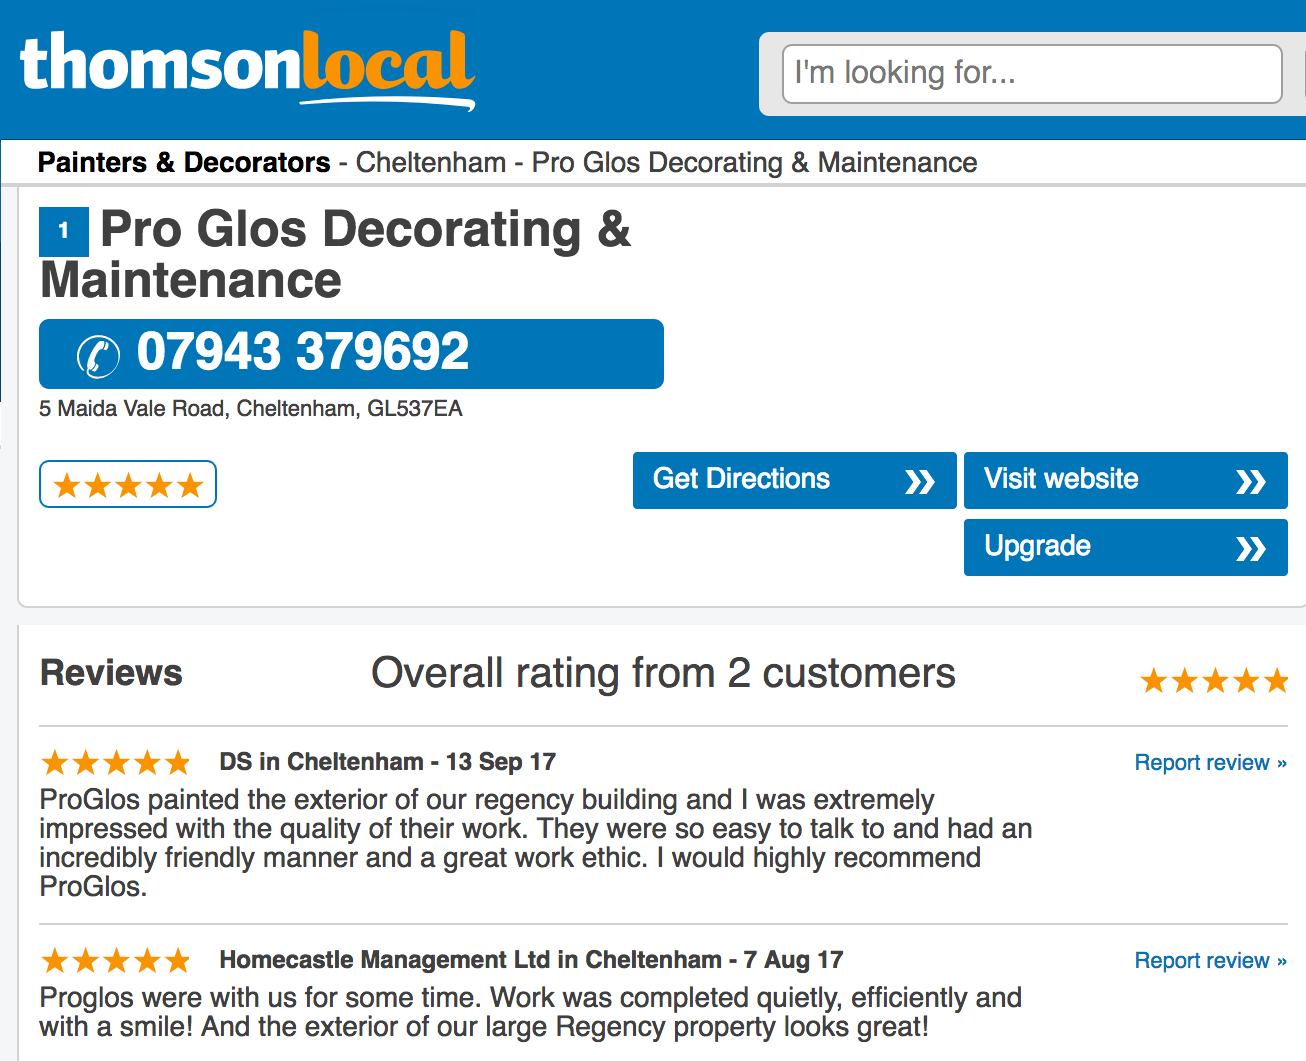 Customer reviews - ProGlos Painting & Decorating reviews from Thomson Local